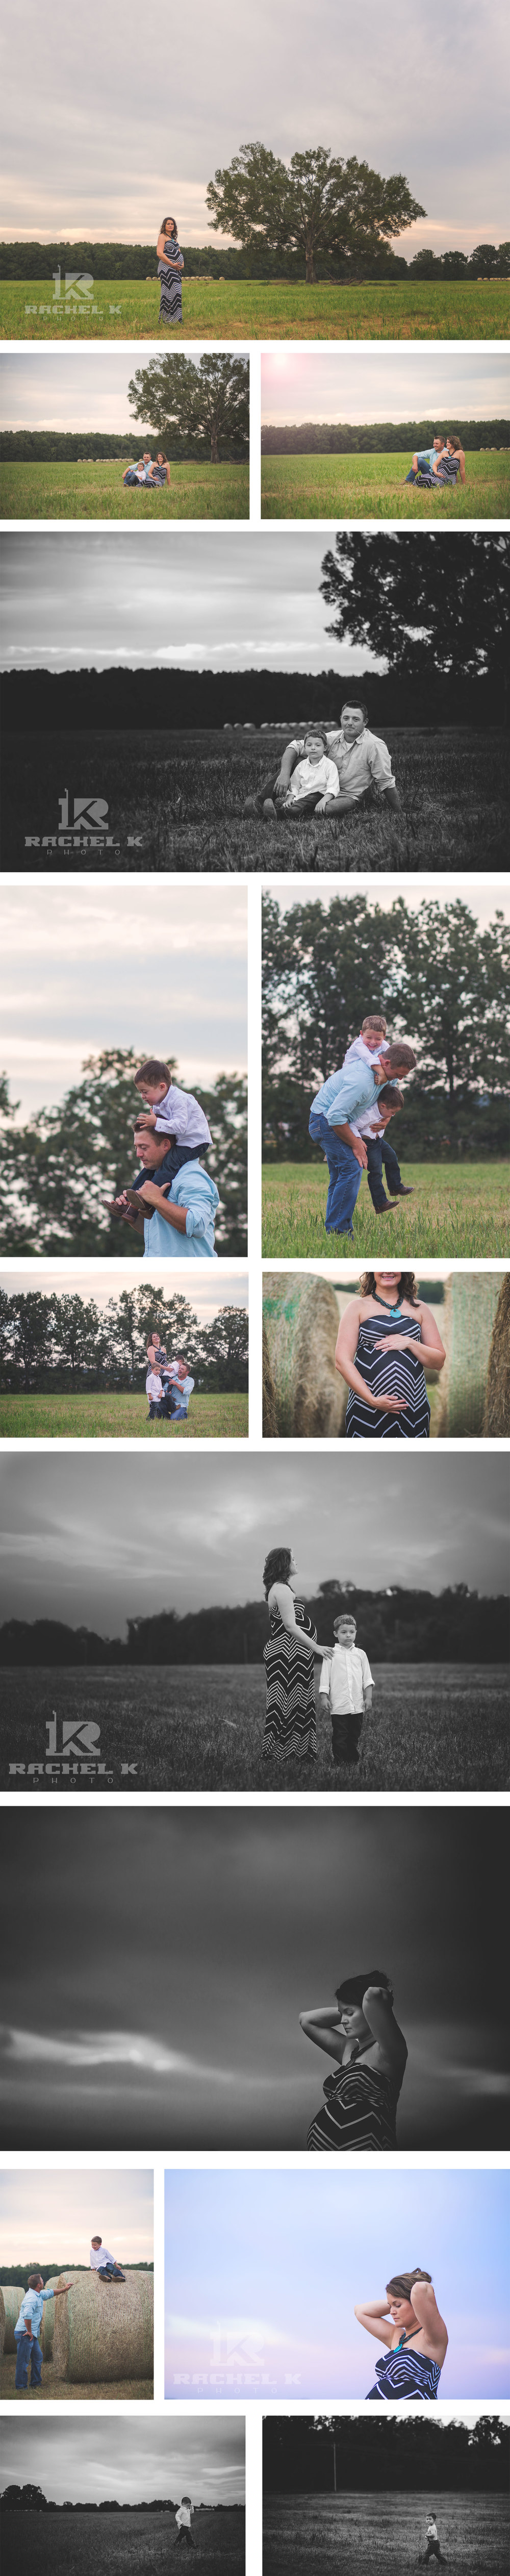 Field maternity session by Rachel K Photo in Arkansas